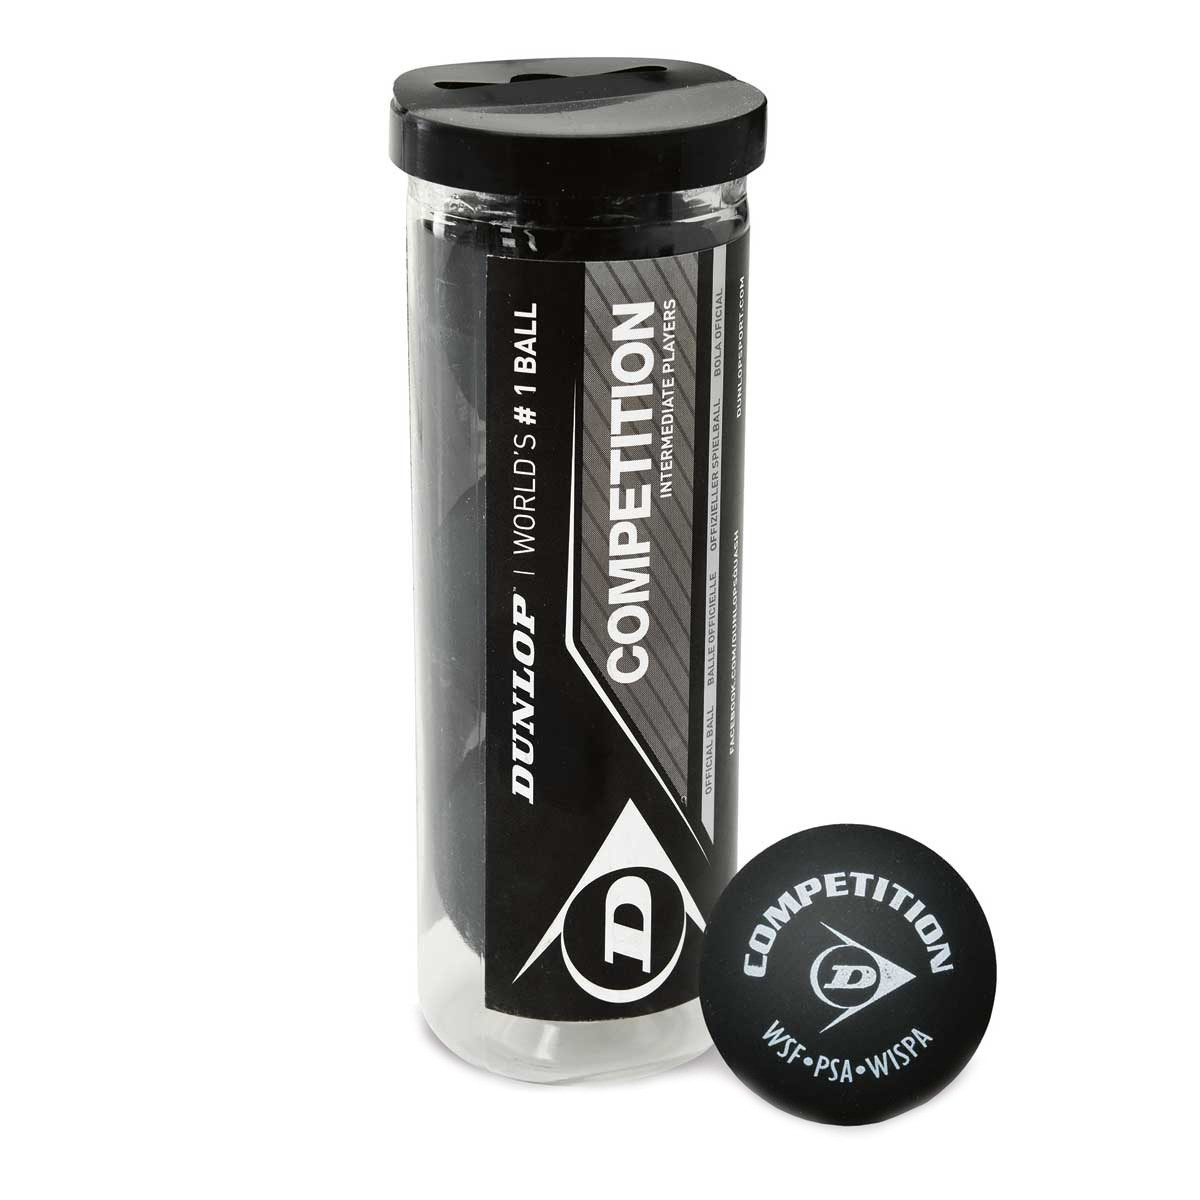 Dunlop Competition 3 Ball tube